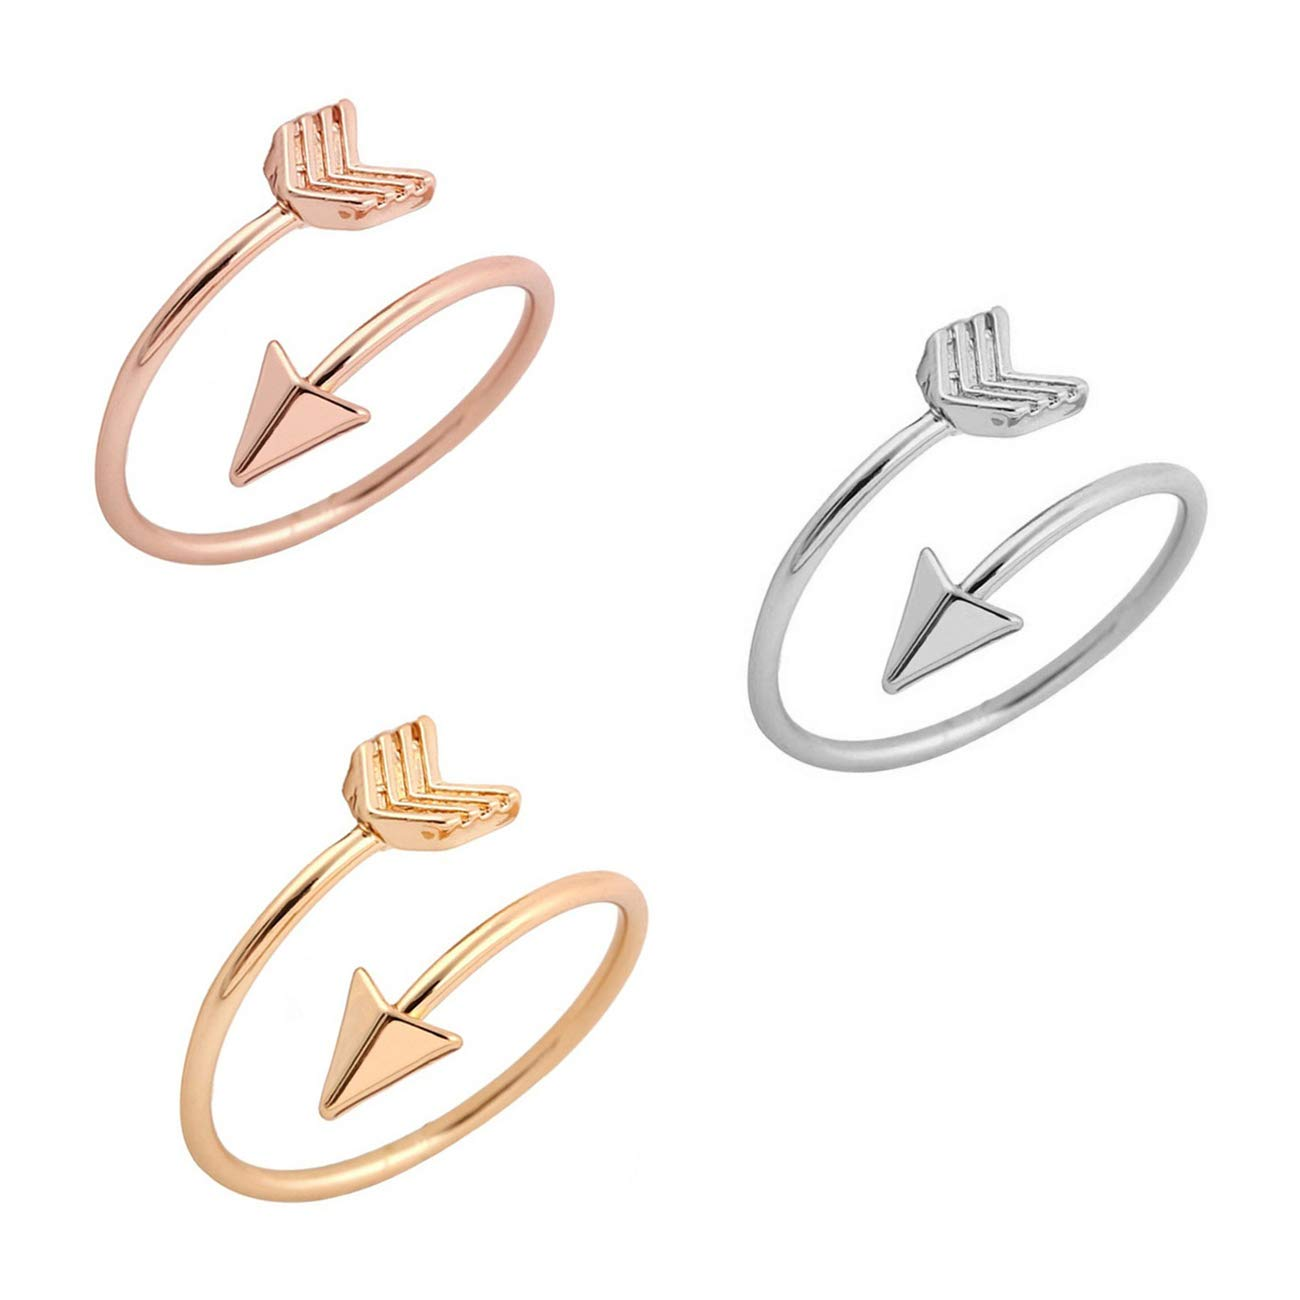 BRBAM Adjustable Love Struck Arrow Ring High Polished Wrap Ring for Woman (3 Color Set)